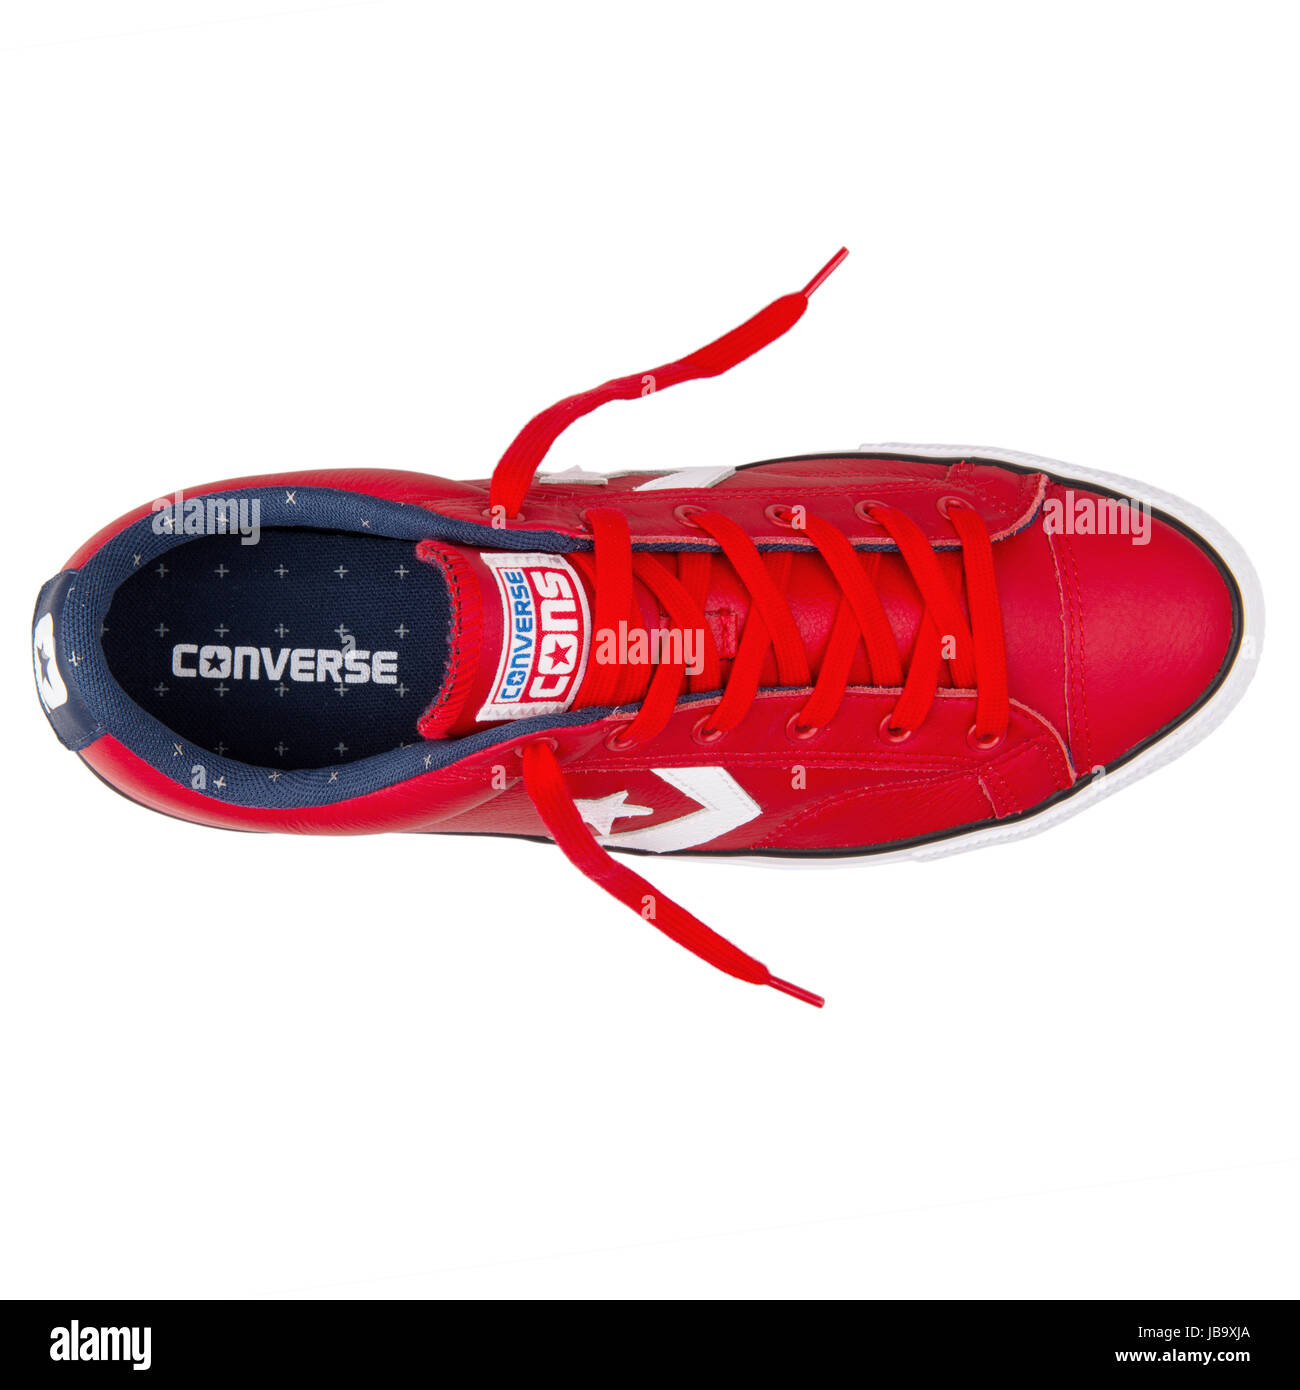 cdfb2417cd9 Converse Chuck Taylor All Star Player OX Red Leather and Casino White  Unisex Shoes - 149770C